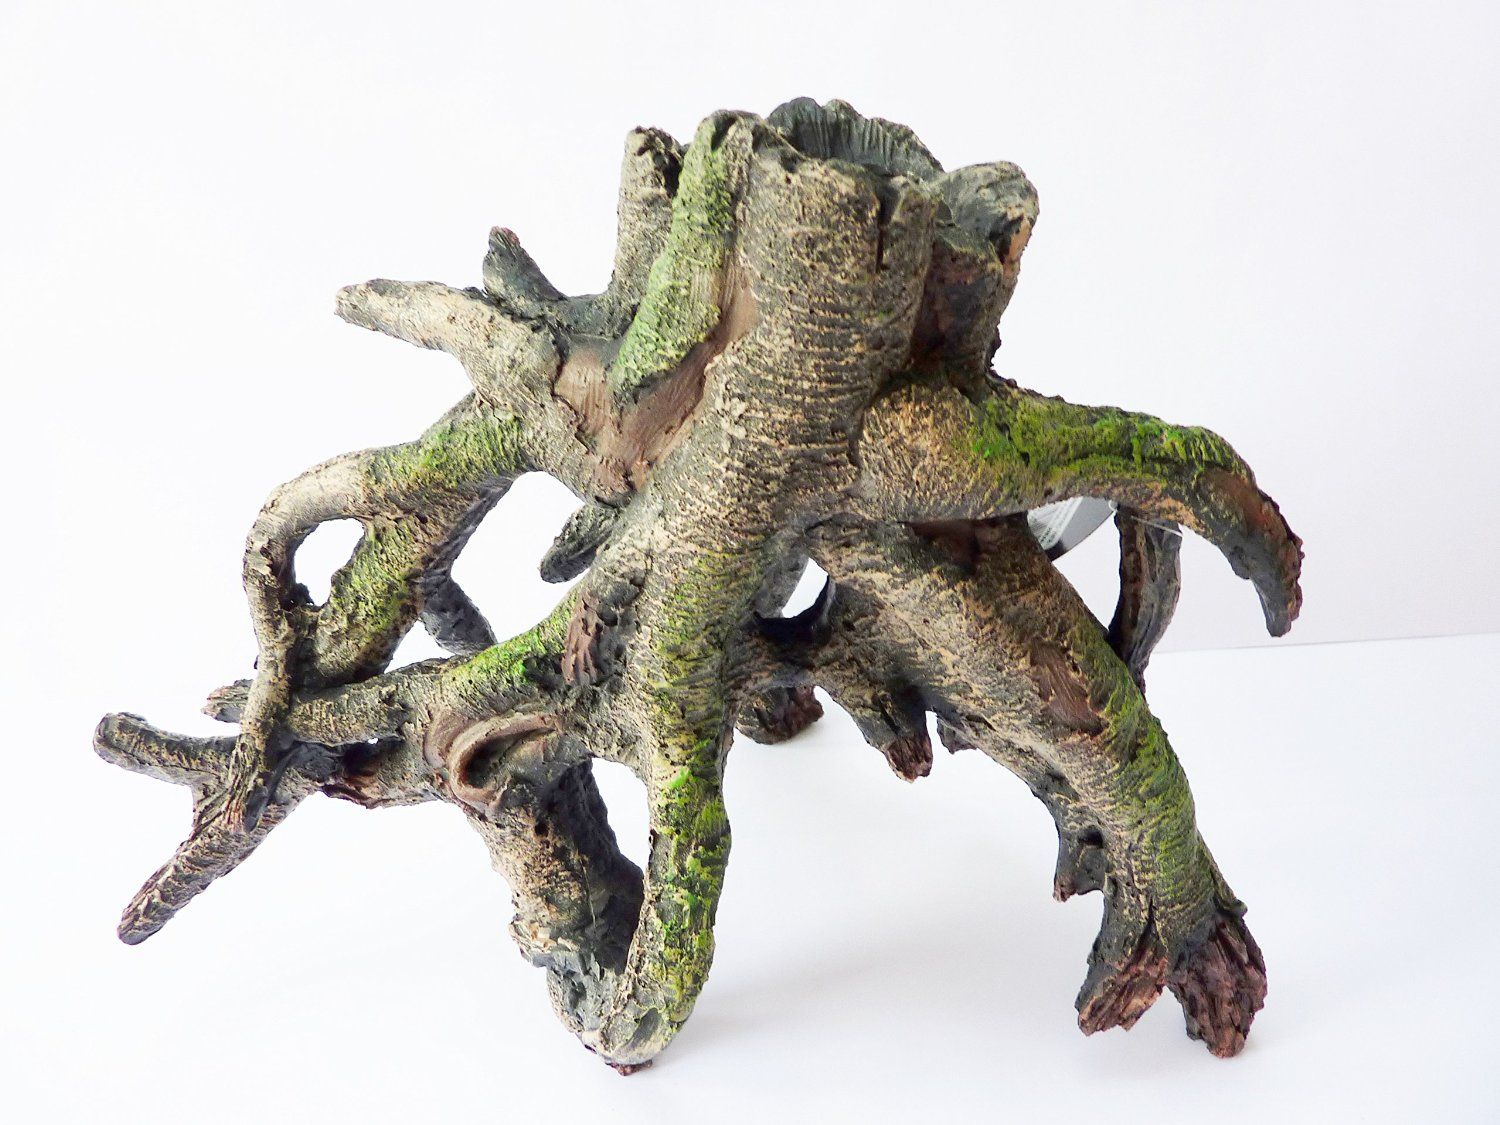 Fish tank supplies - Highly Detailed Aquarium Root Ornament Suitable For All Types Of Fish Tank Amazon